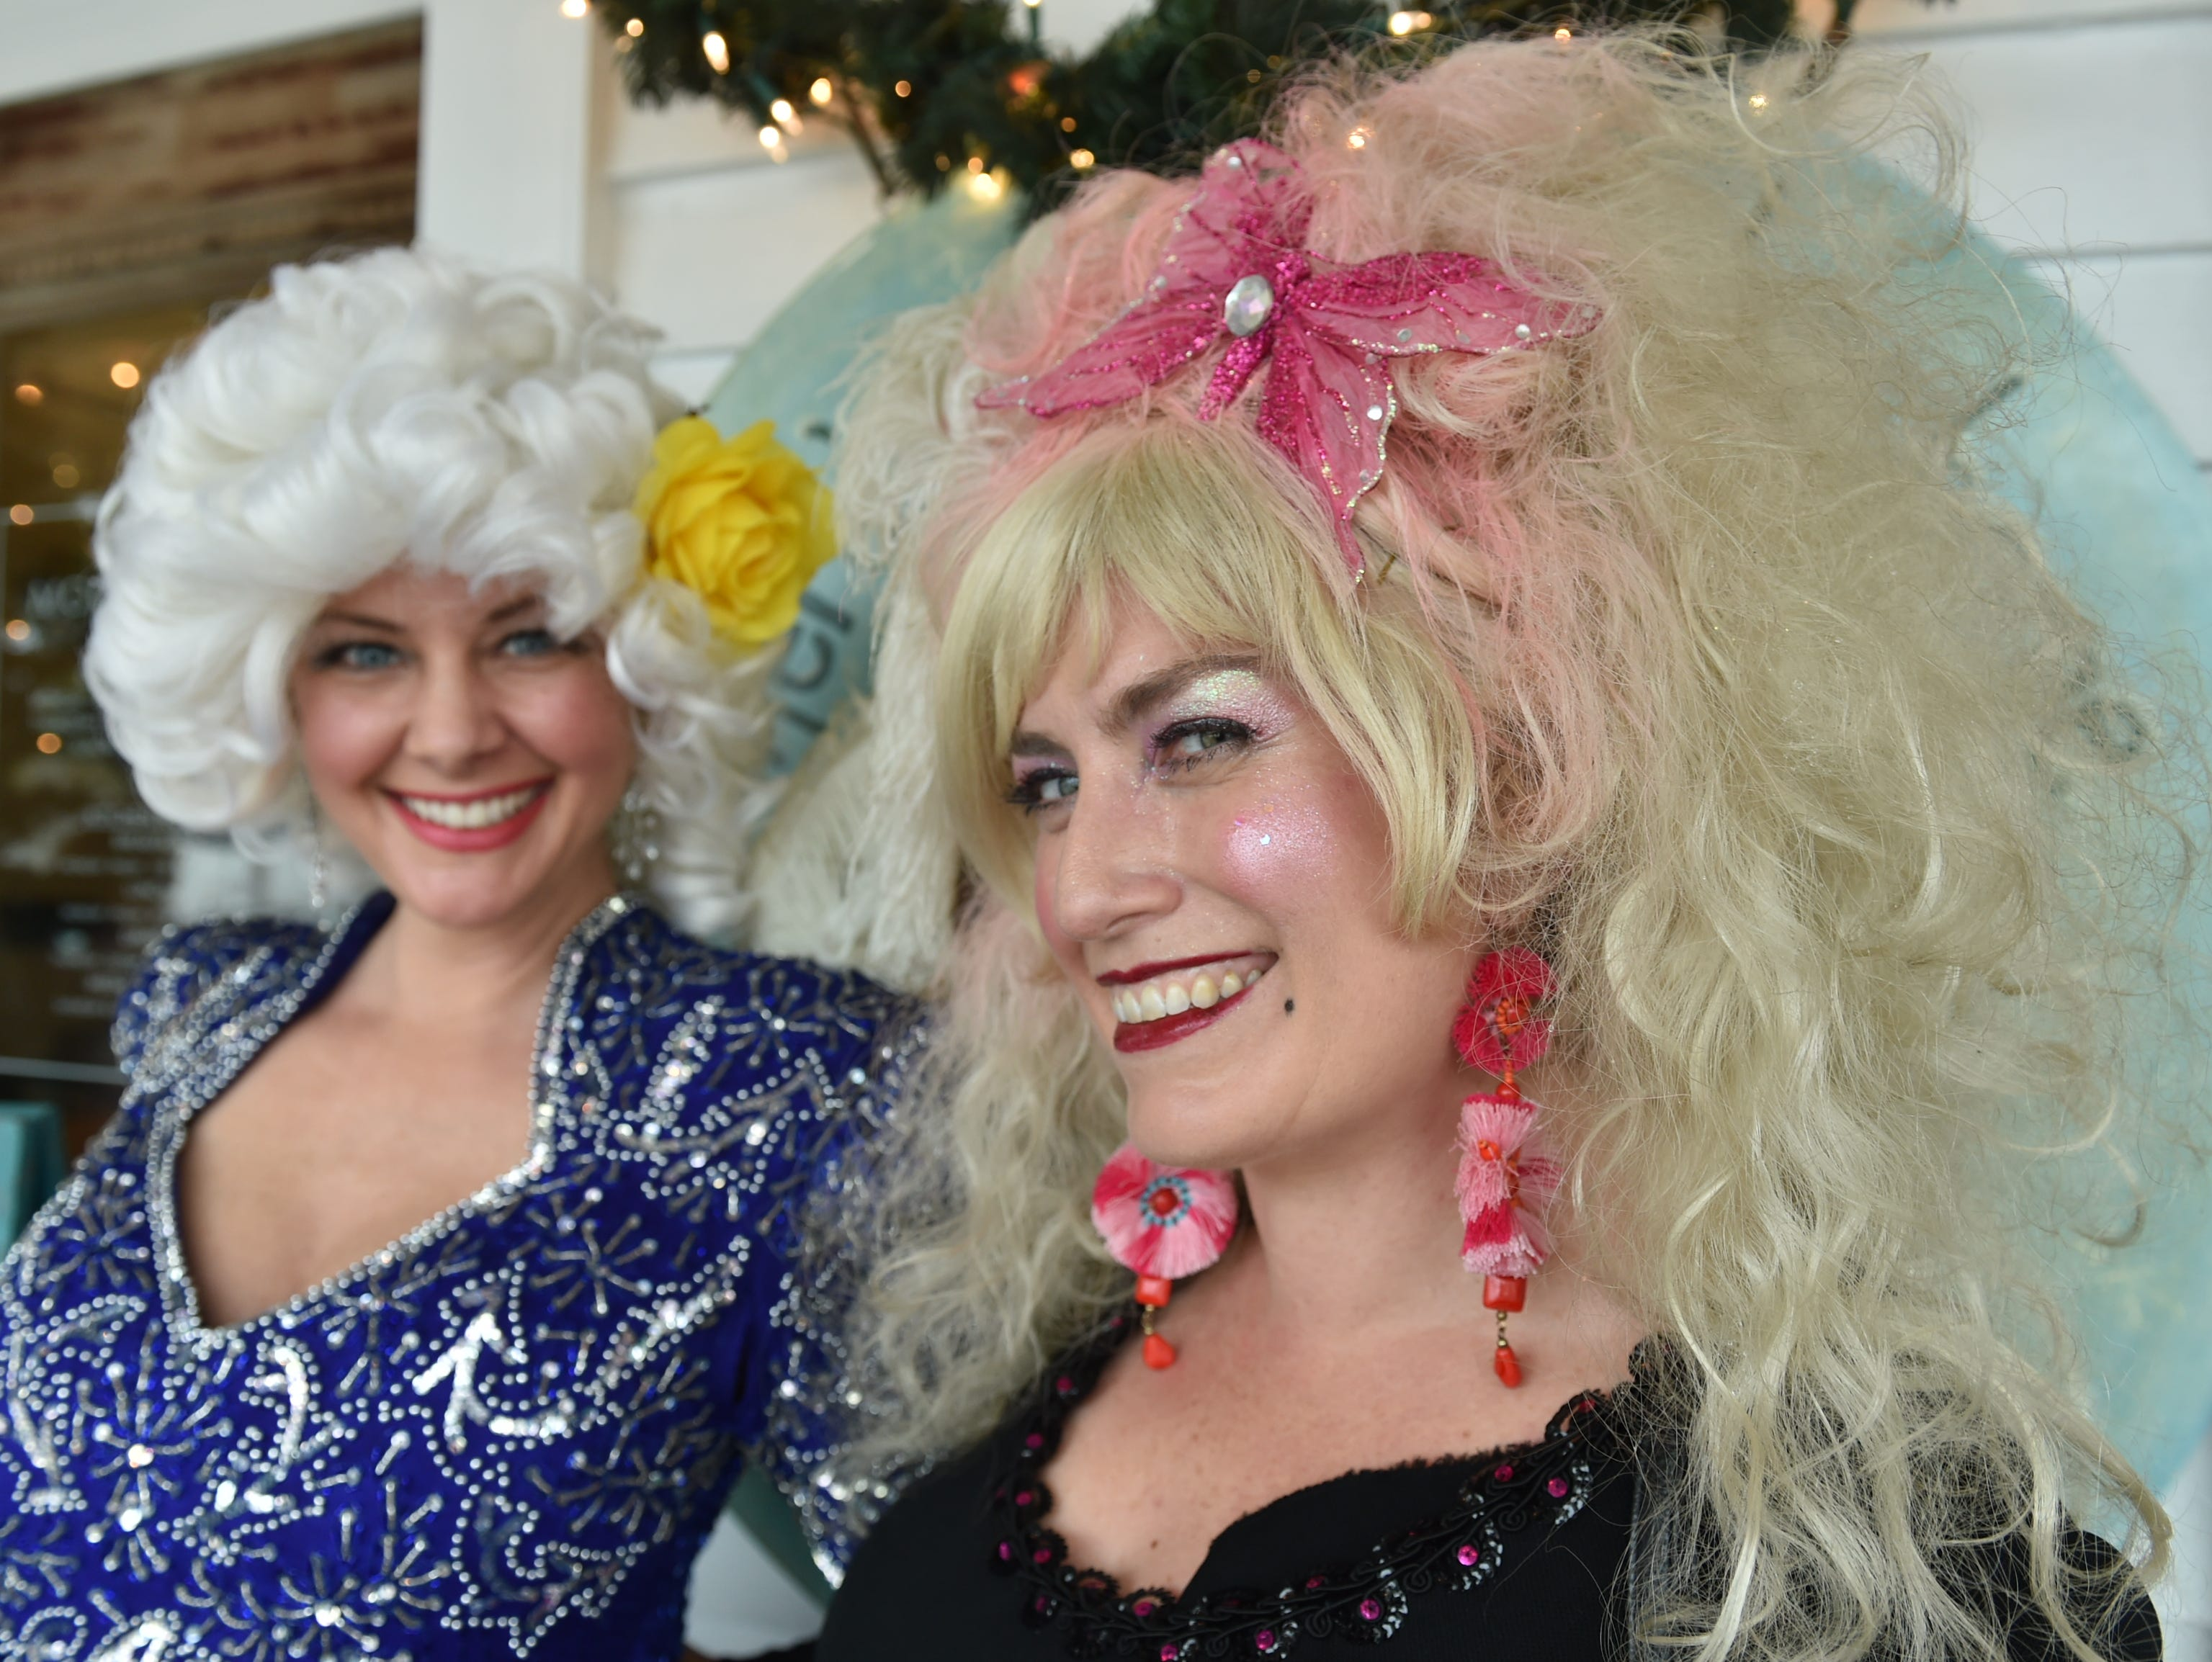 Dolly Parton fans Tiffany Martinez (left) and Amy Robertson (right), both from New Orleans, pose on the porch of the Mockingbird Cafe in Bay St. Louis before the 4th annual Dolly Should festival look-a-like contest. Martinez and Robertson have attended every Dolly Festival to-date. Saturday, Jan. 12, 2019.